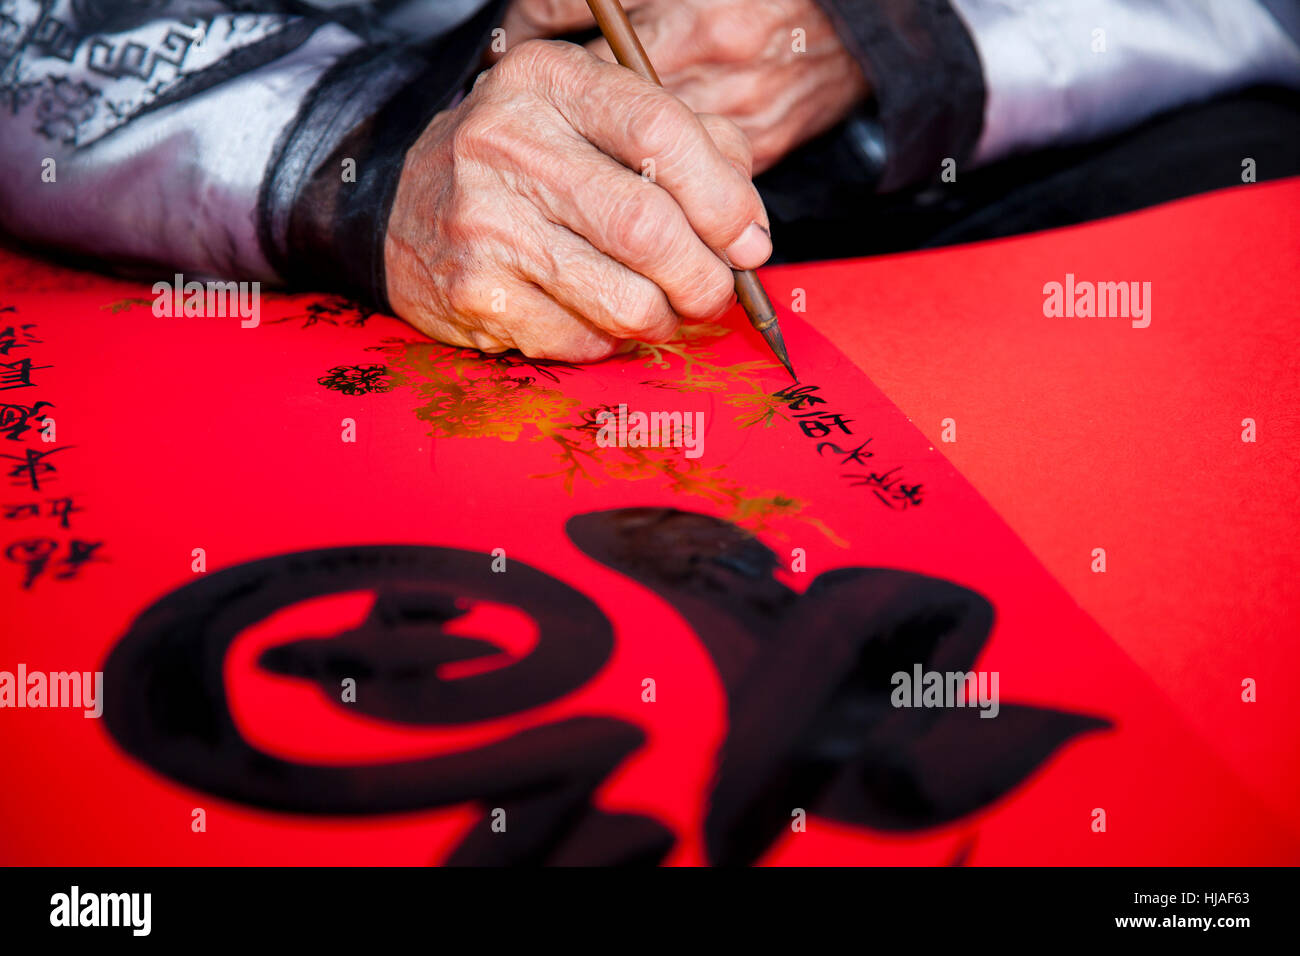 hand, write, wrote, writing, writes, finger, desk, object, art, culture, asia, - Stock Image